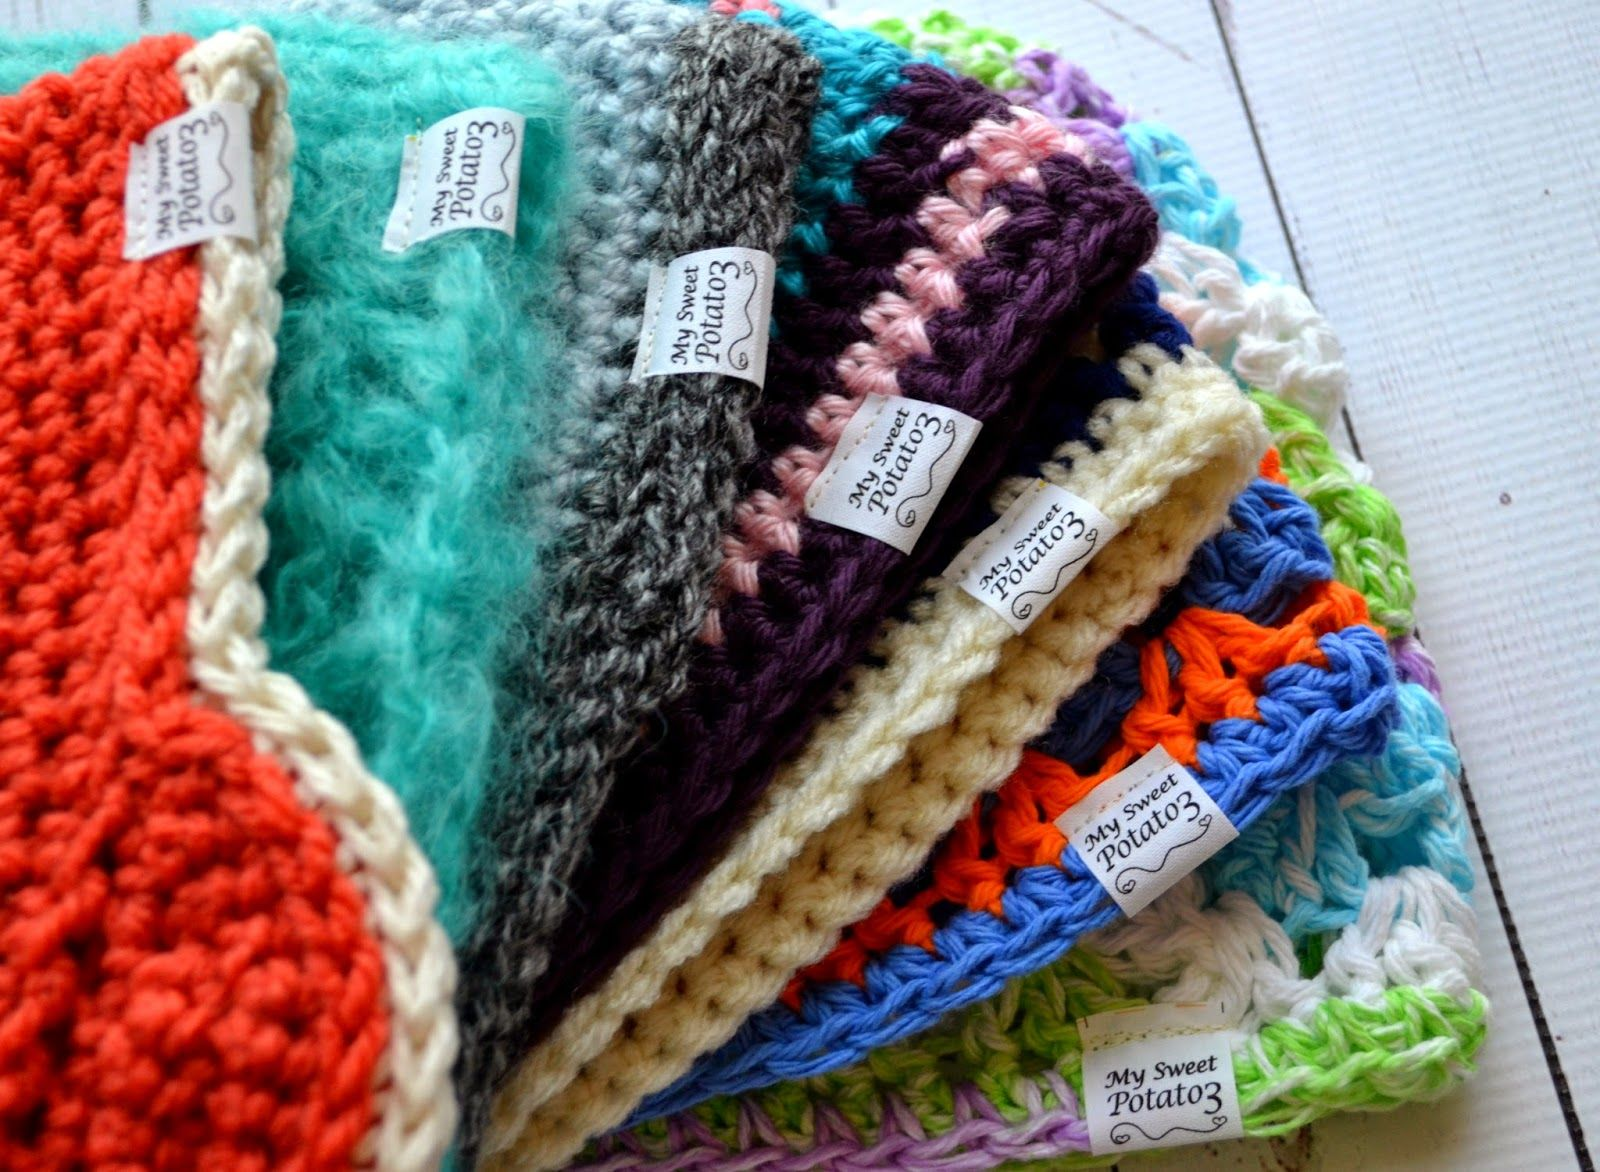 Knitting Items To Sell : My sweet potato labeling your crochet goods sale on